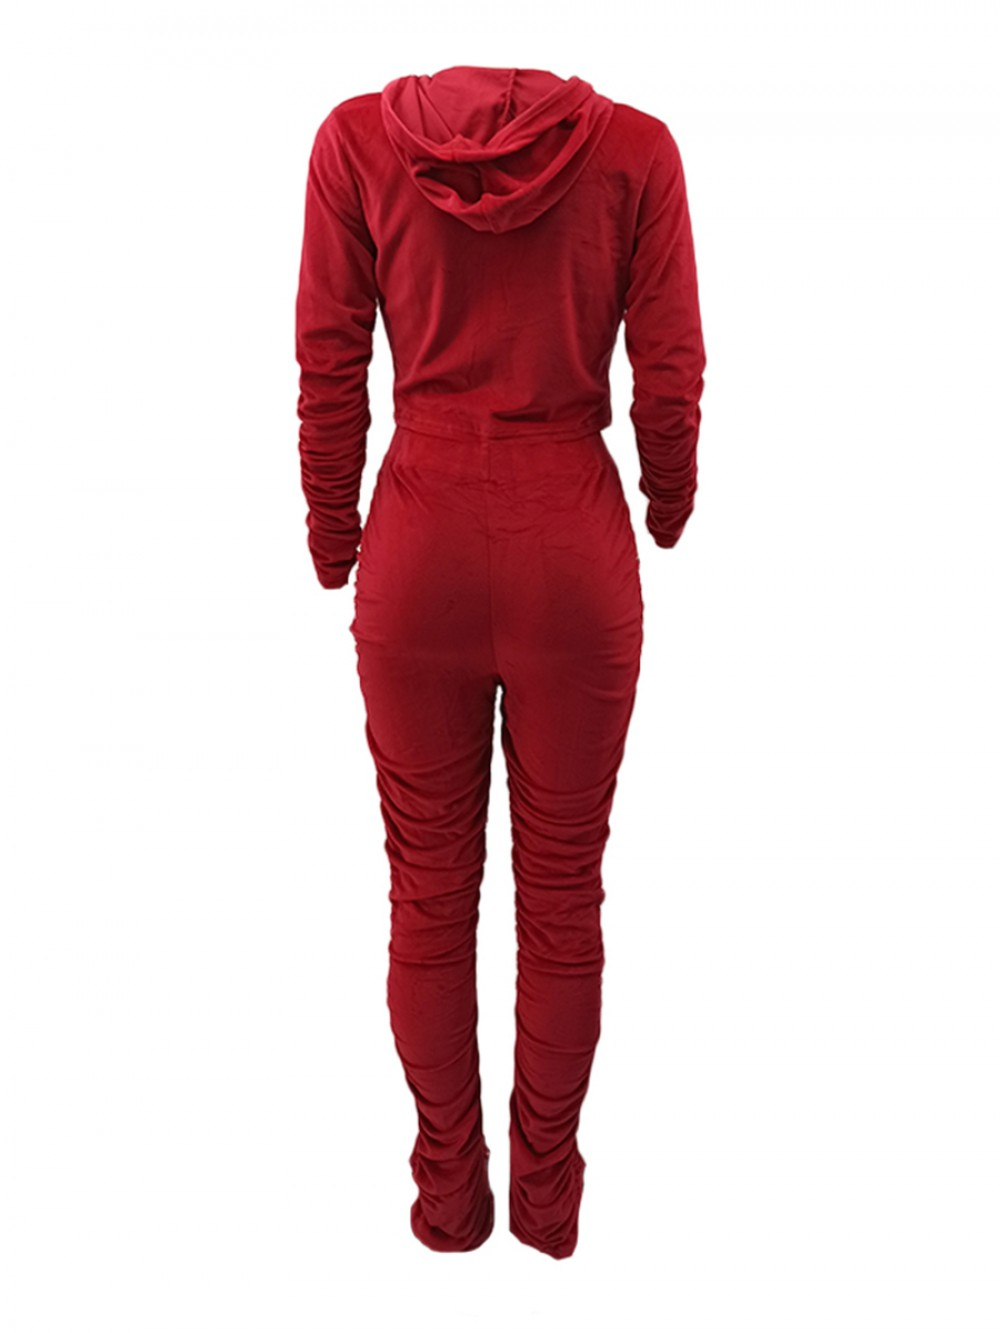 Red Ruched High Waist Zipper 2 Piece Outfit Casual Wear